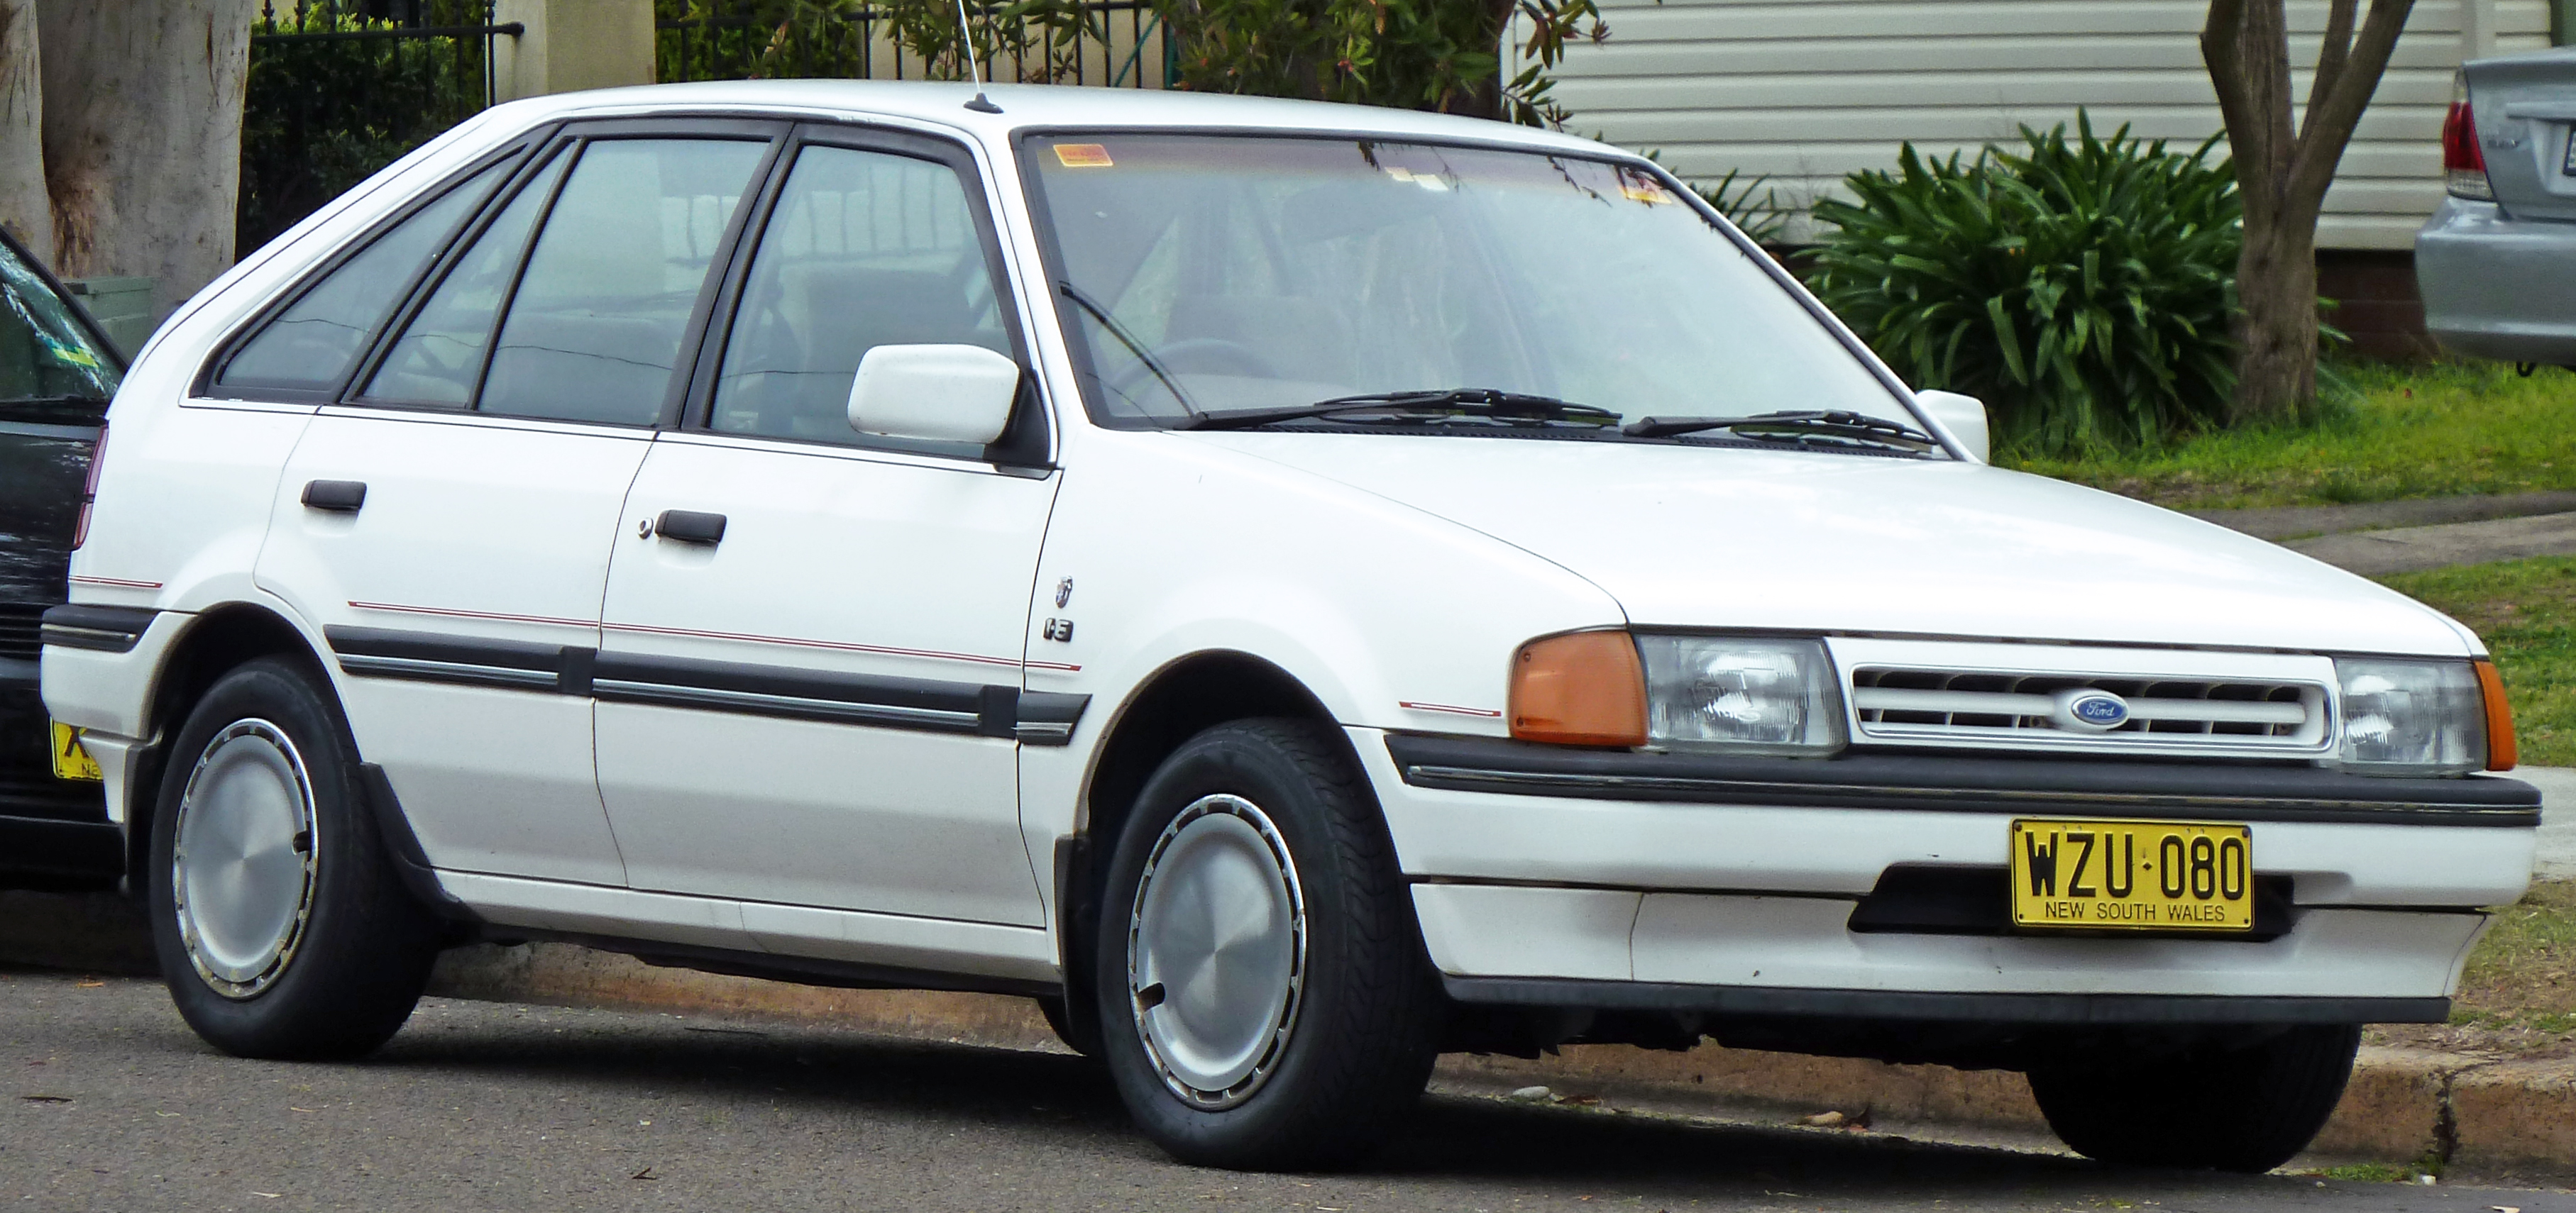 ford laser ghia 1987 with Detail on 1977 Ford Granada Reviews C10782 also 833931 Ford Sierra Ghia 1987 as well Ford Laser also Ford Sierra as well Escort Xr3xr3i.